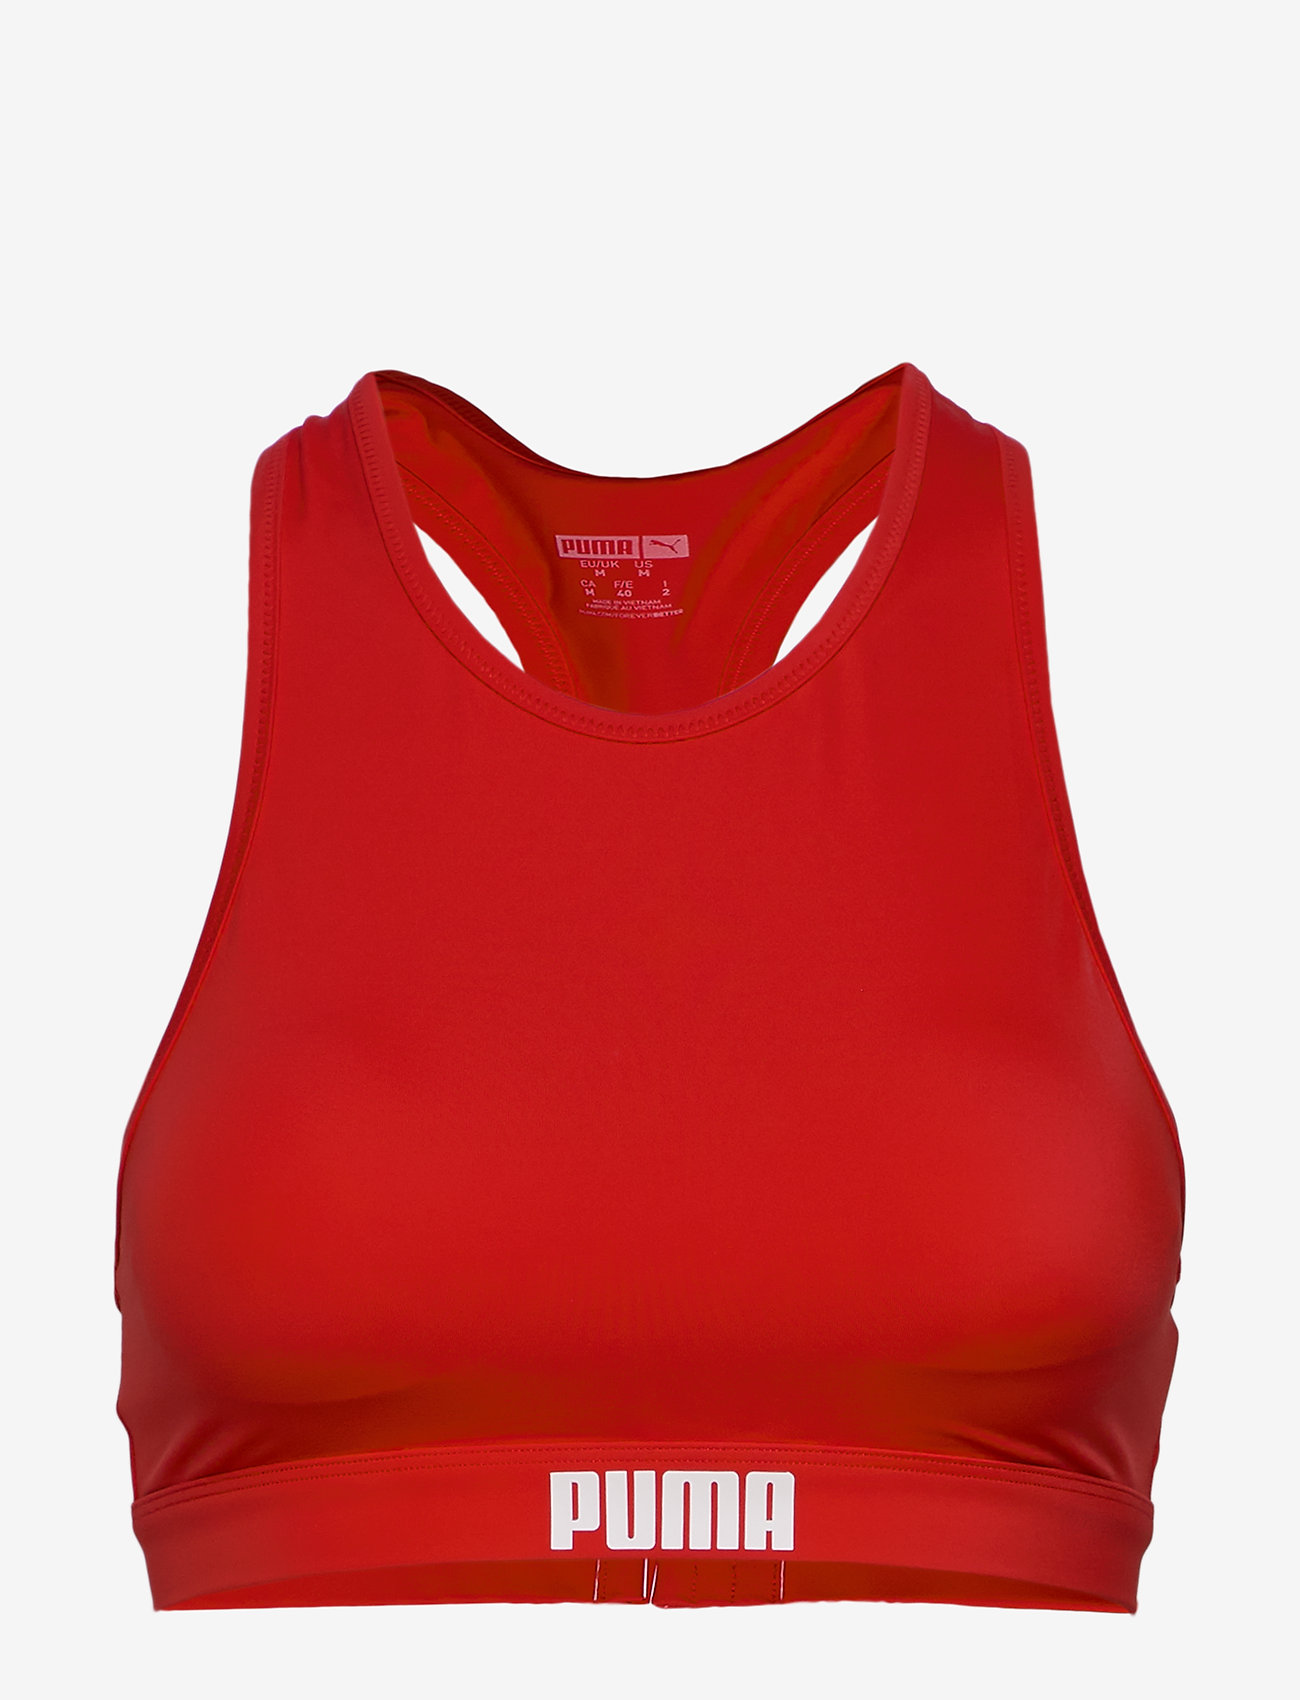 Puma Swim - PUMA SWIM WOMEN RACERBACK SWIM TOP - bikinitopper - red - 0